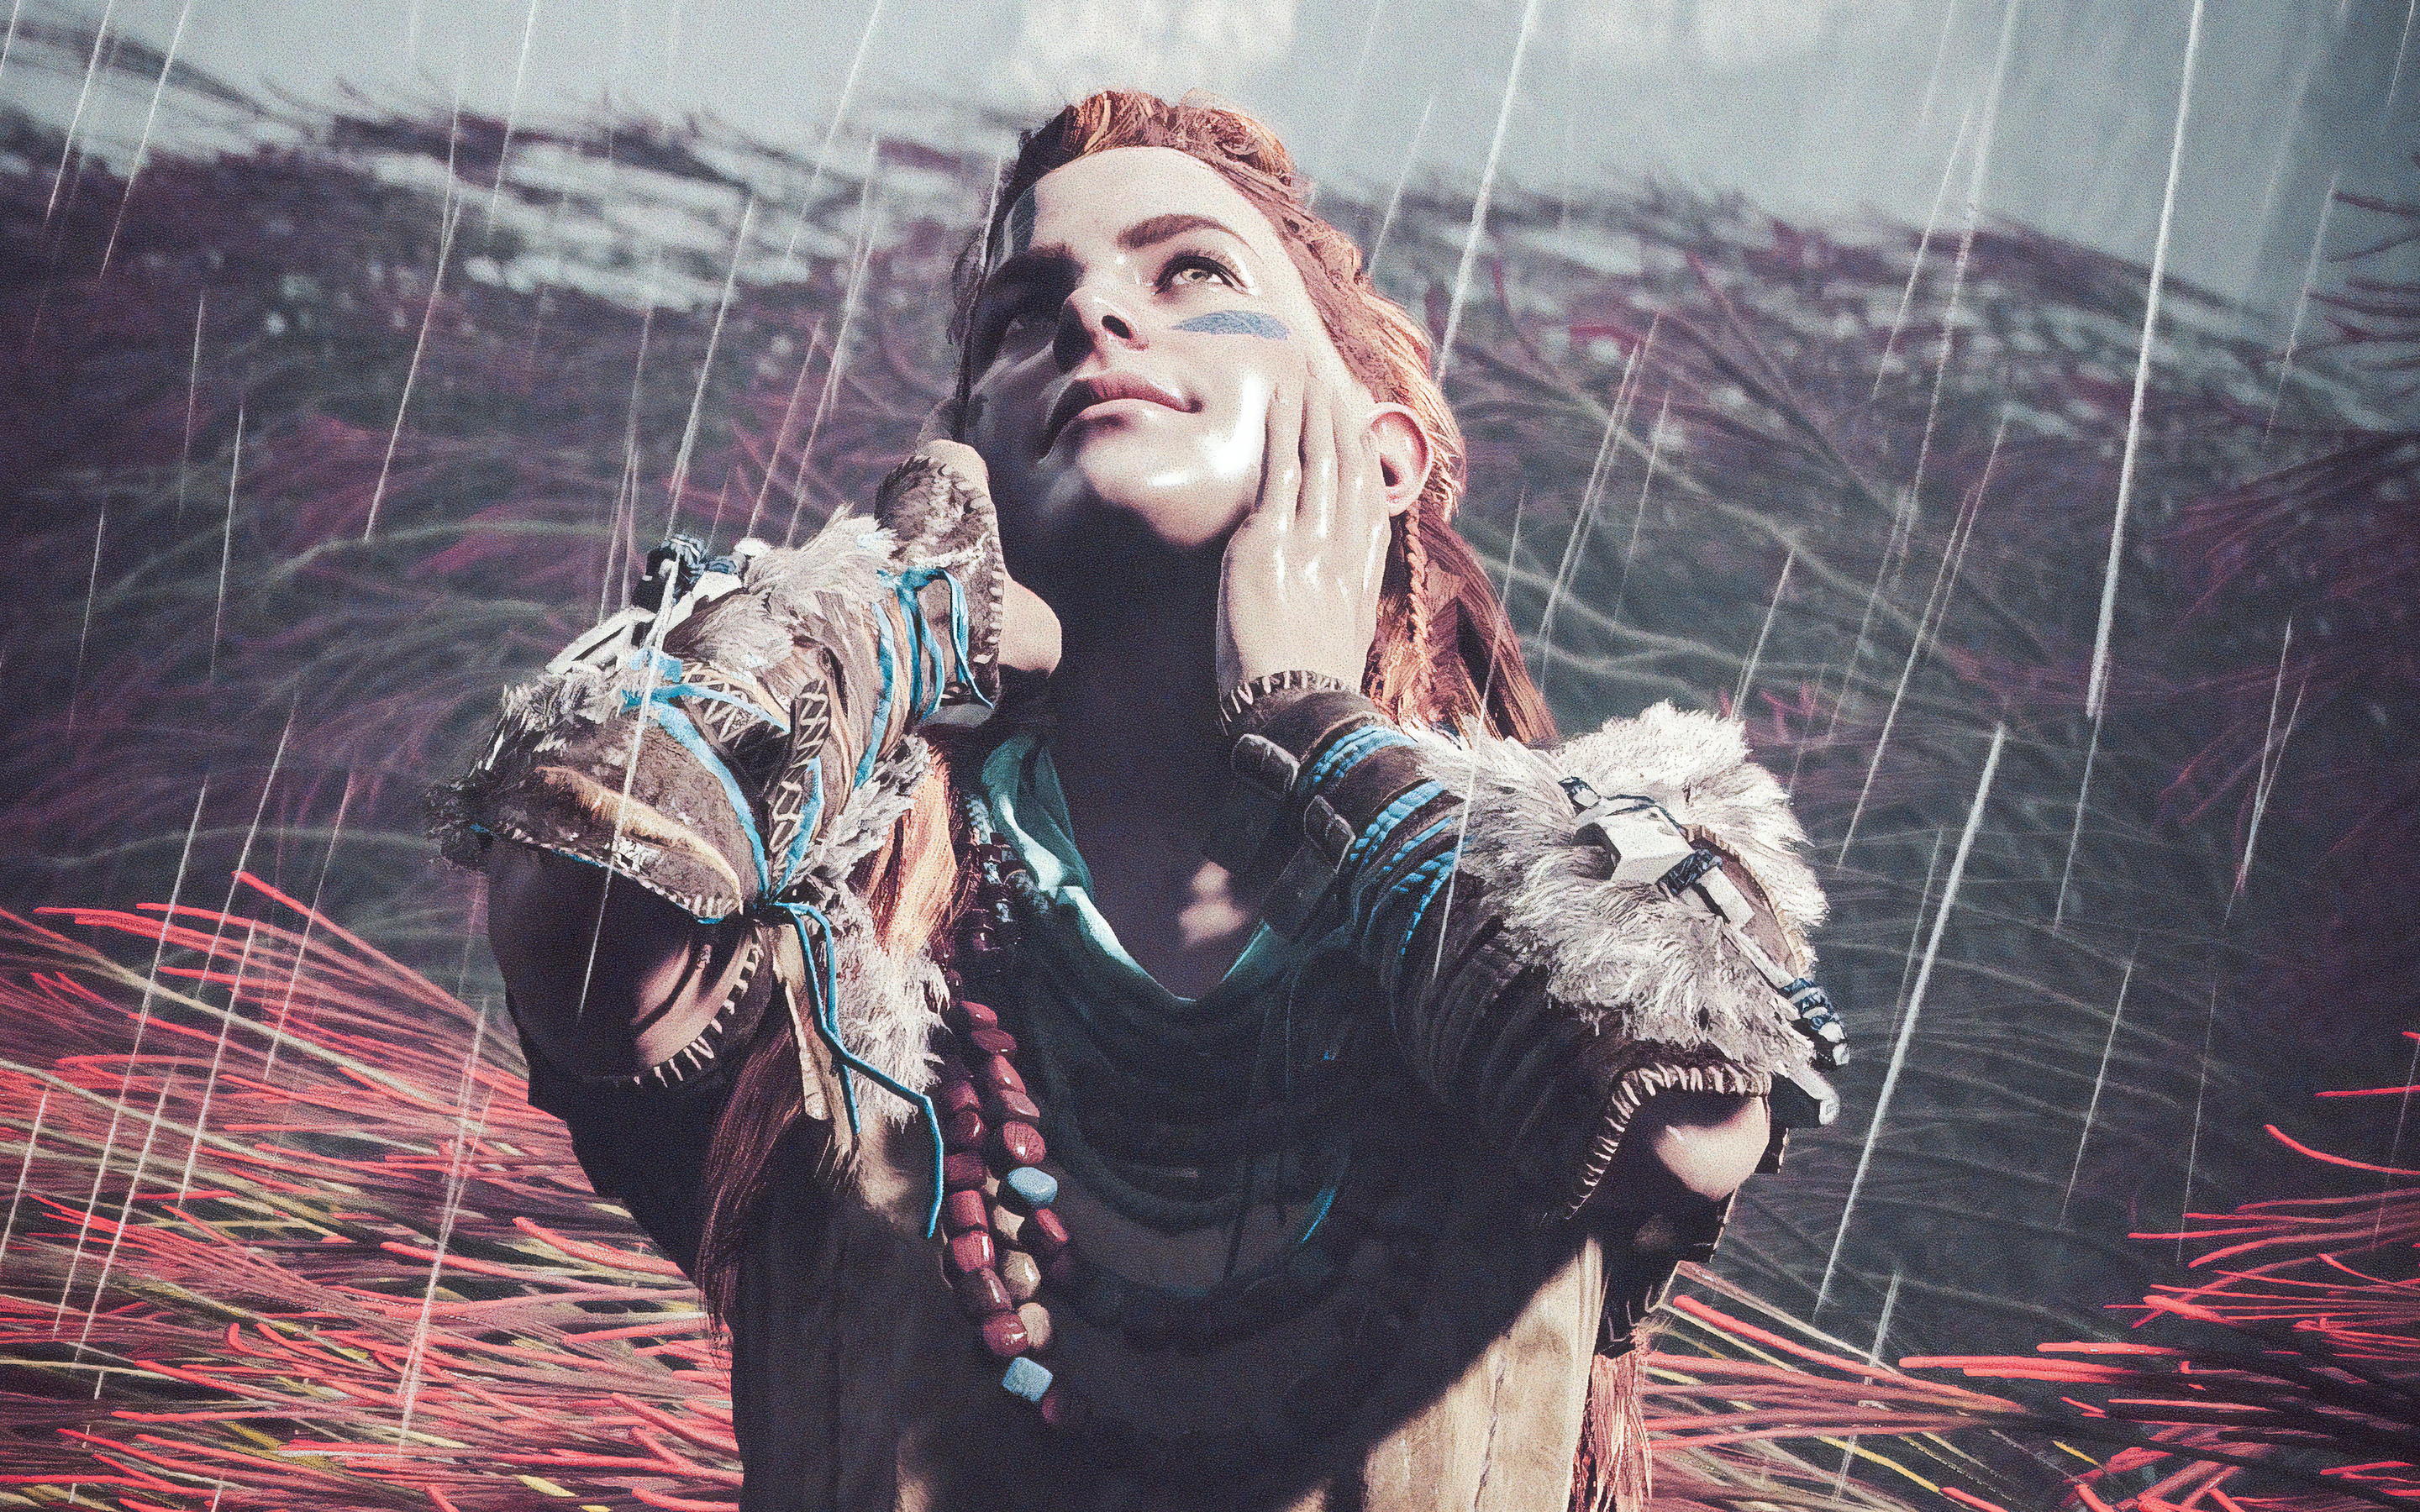 2880x1800 Life Is Good Aloy Horizon Zero Dawn 4k Macbook Pro